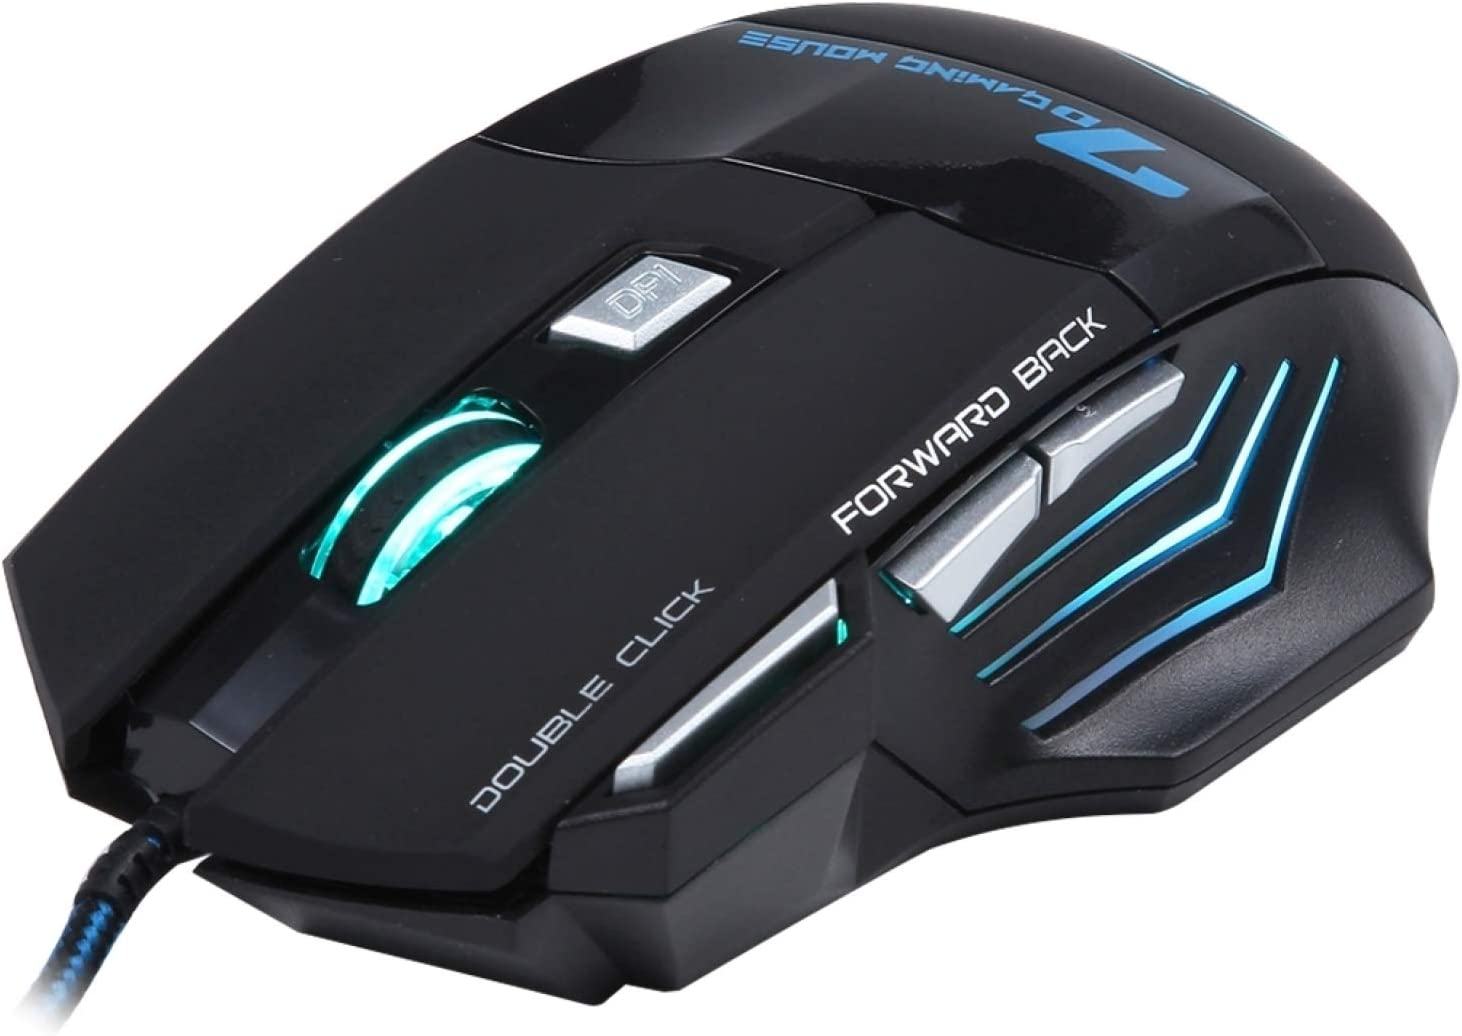 Jingxunsm 5000 DPI LED Wired Gaming Mouse PC Department store Computer Product for Notebo